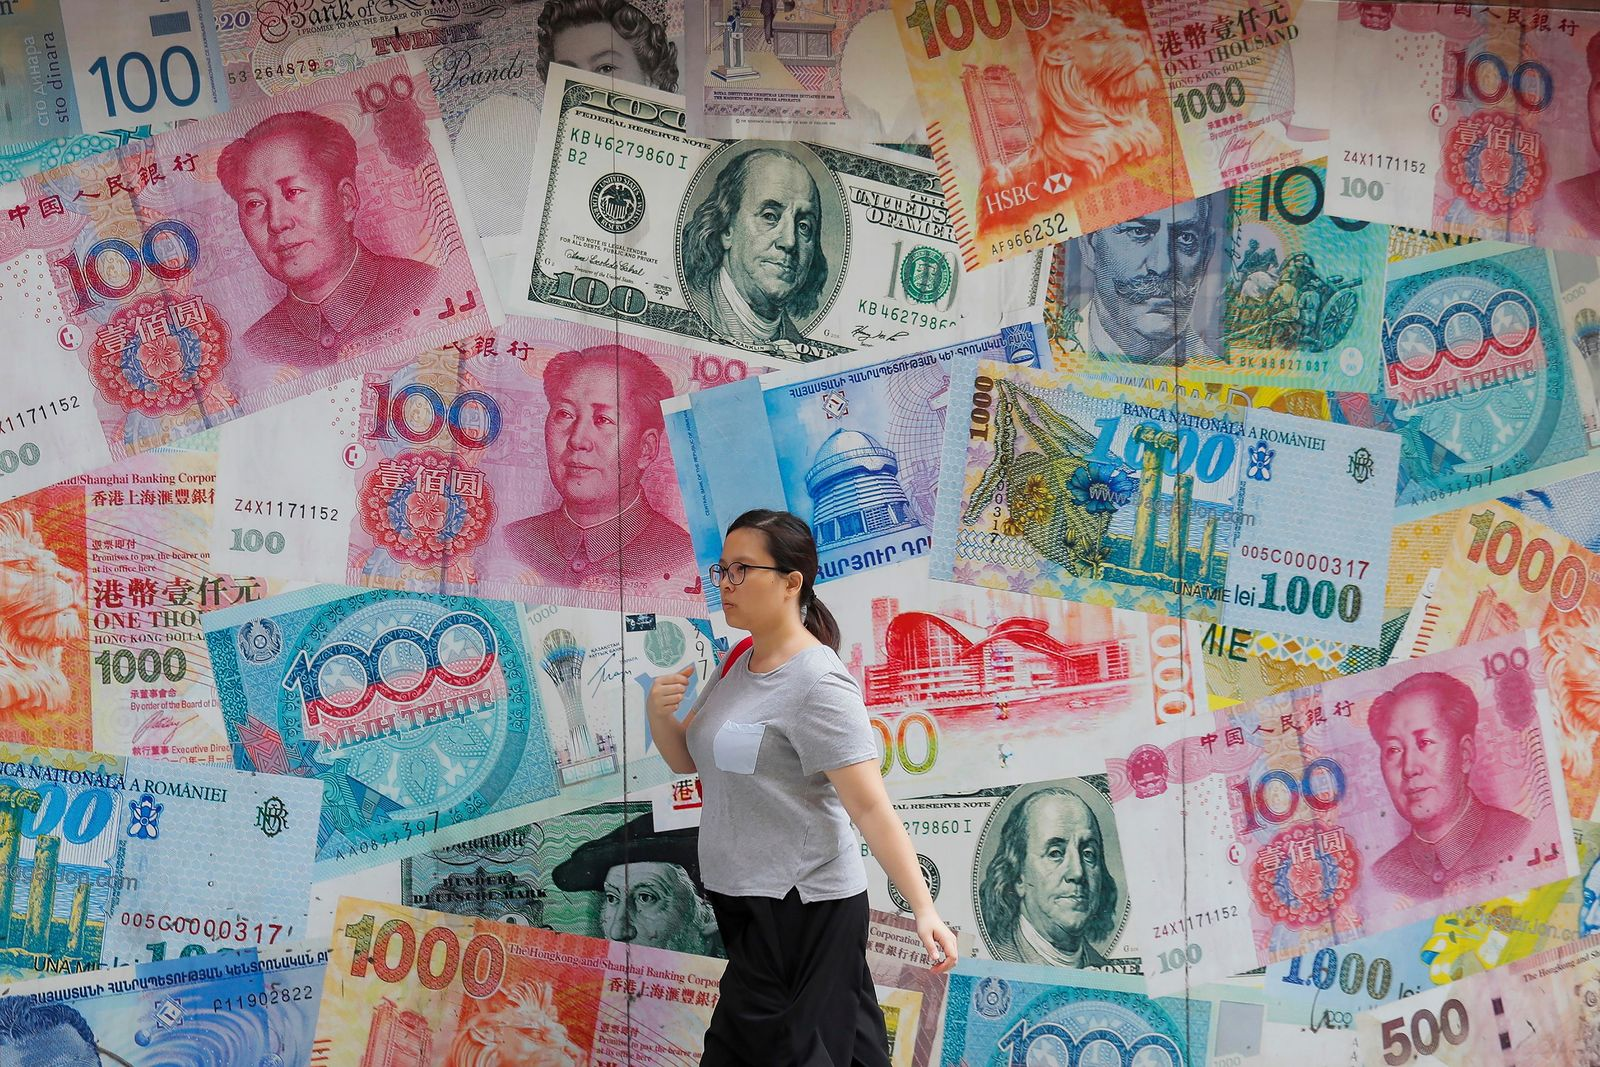 FILE _ In this Aug. 6, 2019, file photo, a woman walks by a money exchange shop decorated with different countries currency banknotes at Central, a business district in Hong Kong. China has announced it will raise tariffs on $75 billion of U.S. products in retaliation for President Donald Trump's planned Sept. 1 duty increase in a war over trade and technology policy. (AP Photo/Kin Cheung, File)